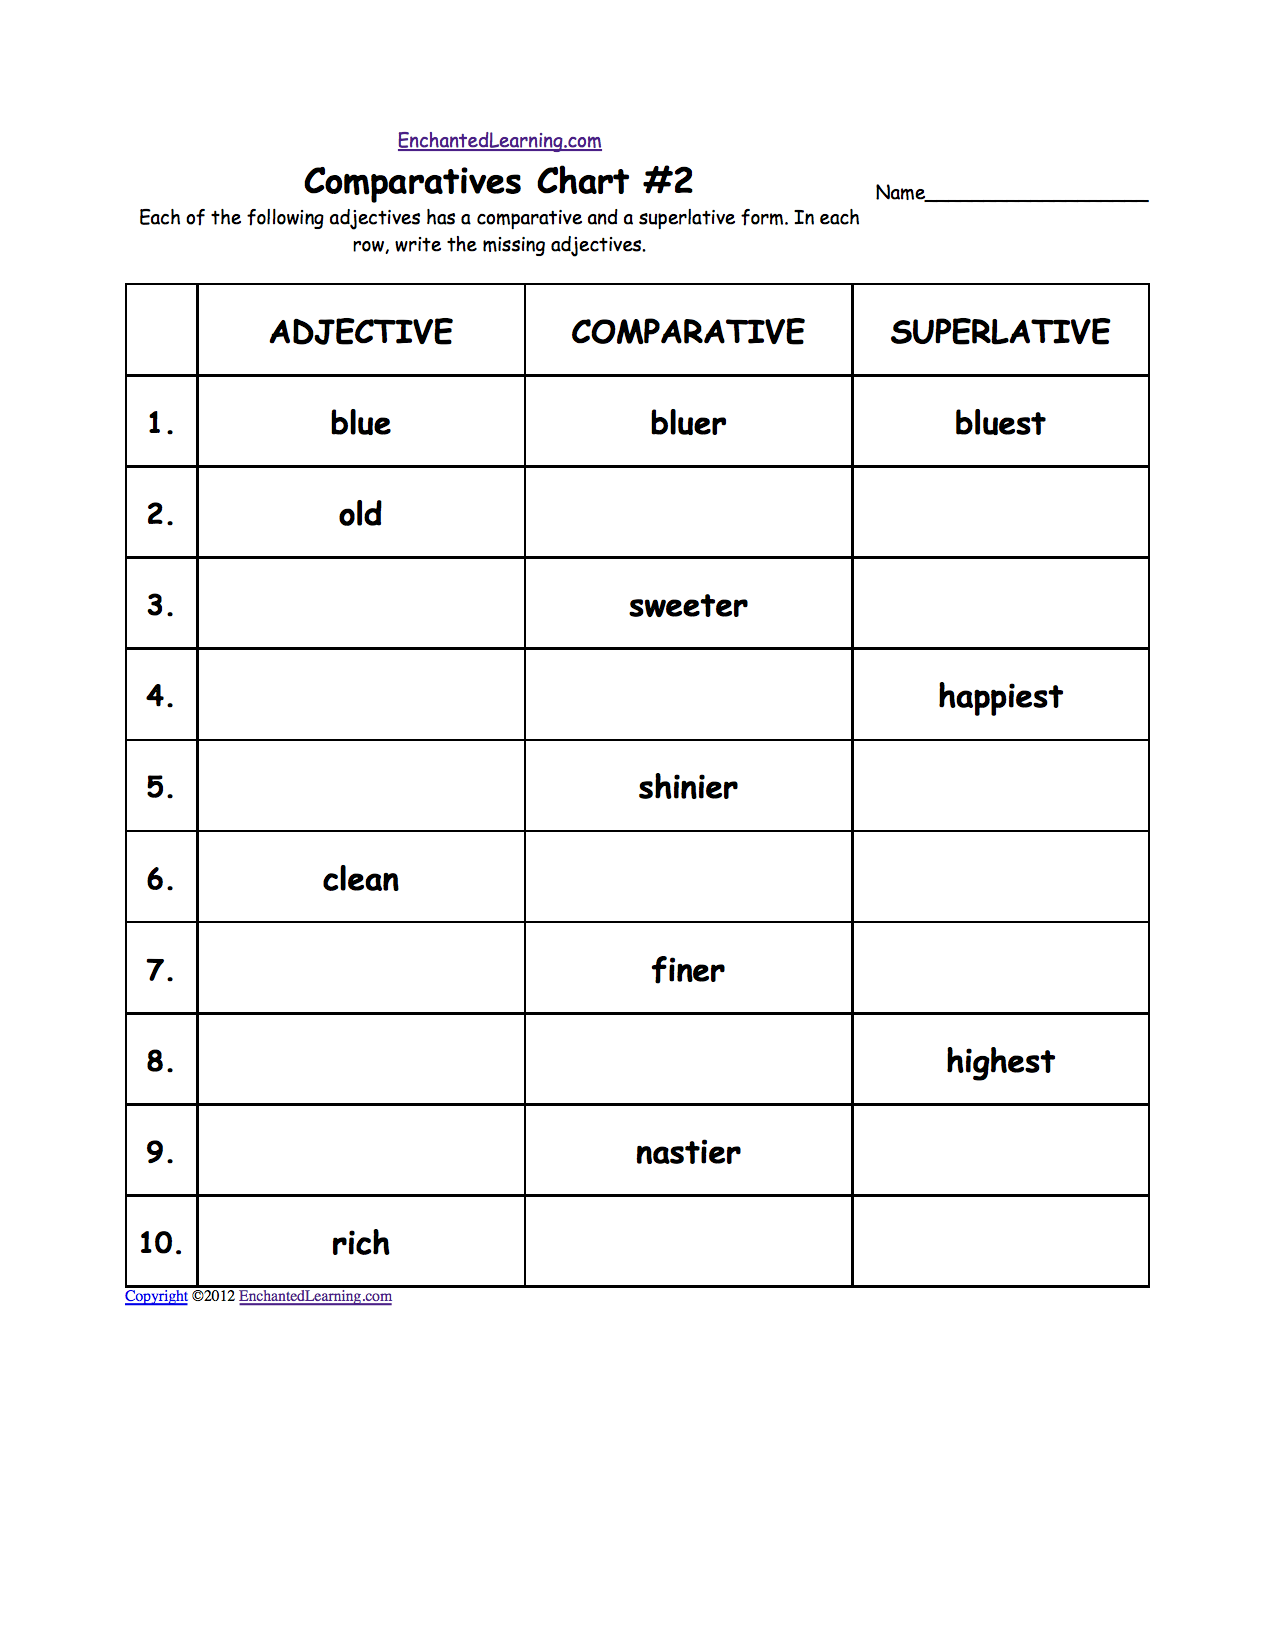 Worksheets Comparatives And Superlatives Worksheets comparative and superlative adjectives enchantedlearning com